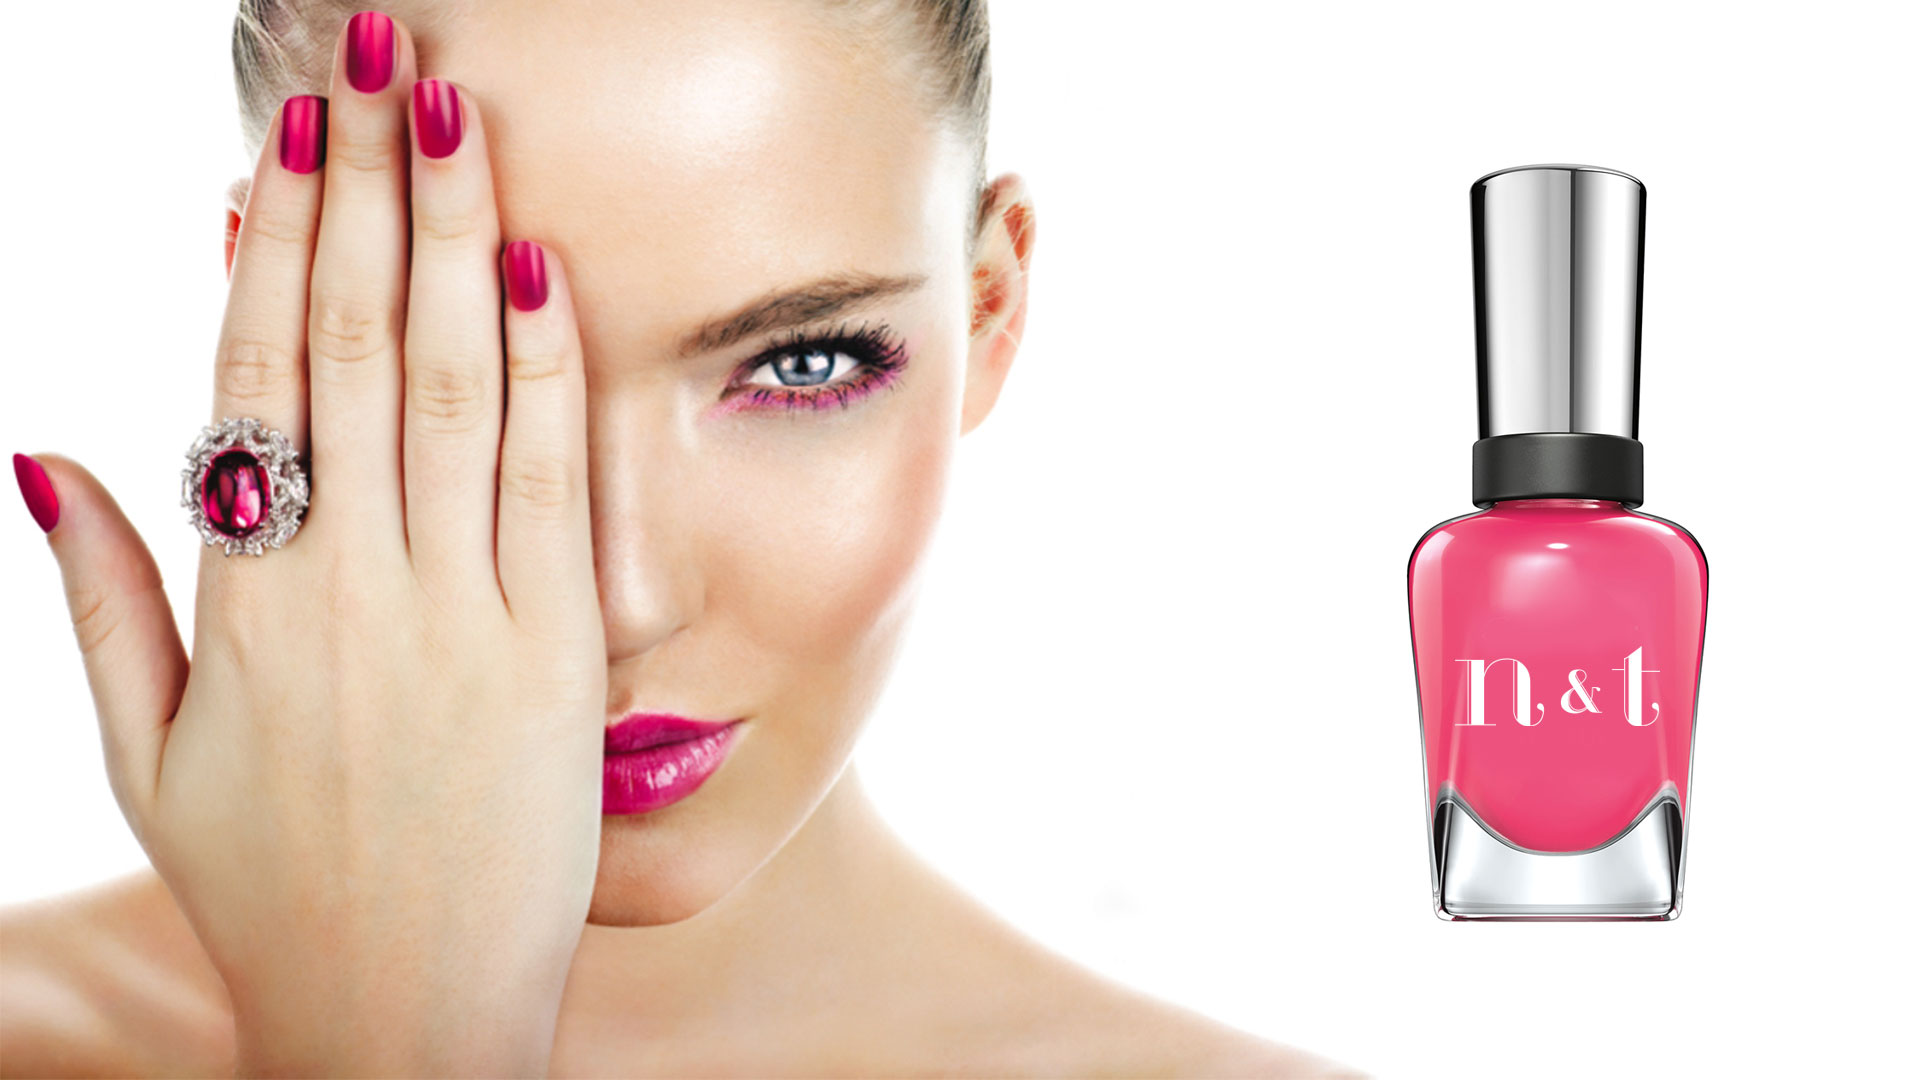 Nails and Toes Beauty Salon Logo Design